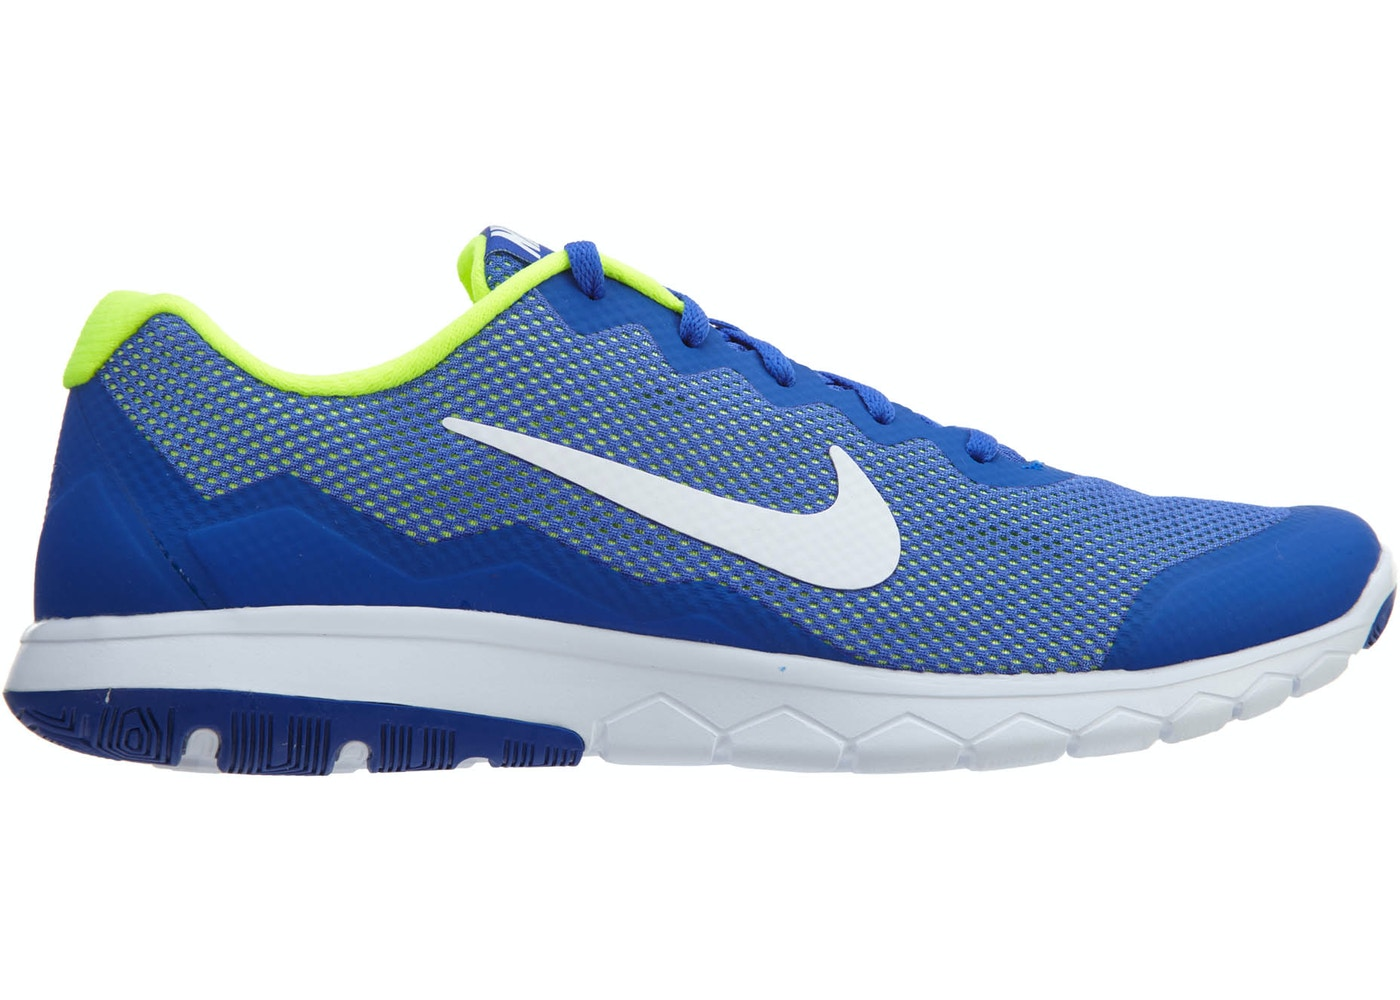 b6f7109a28bf Sell. or Ask. Size --. View All Bids. Nike Flex Experience Rn 4 Racer Blue  White-Volt-White